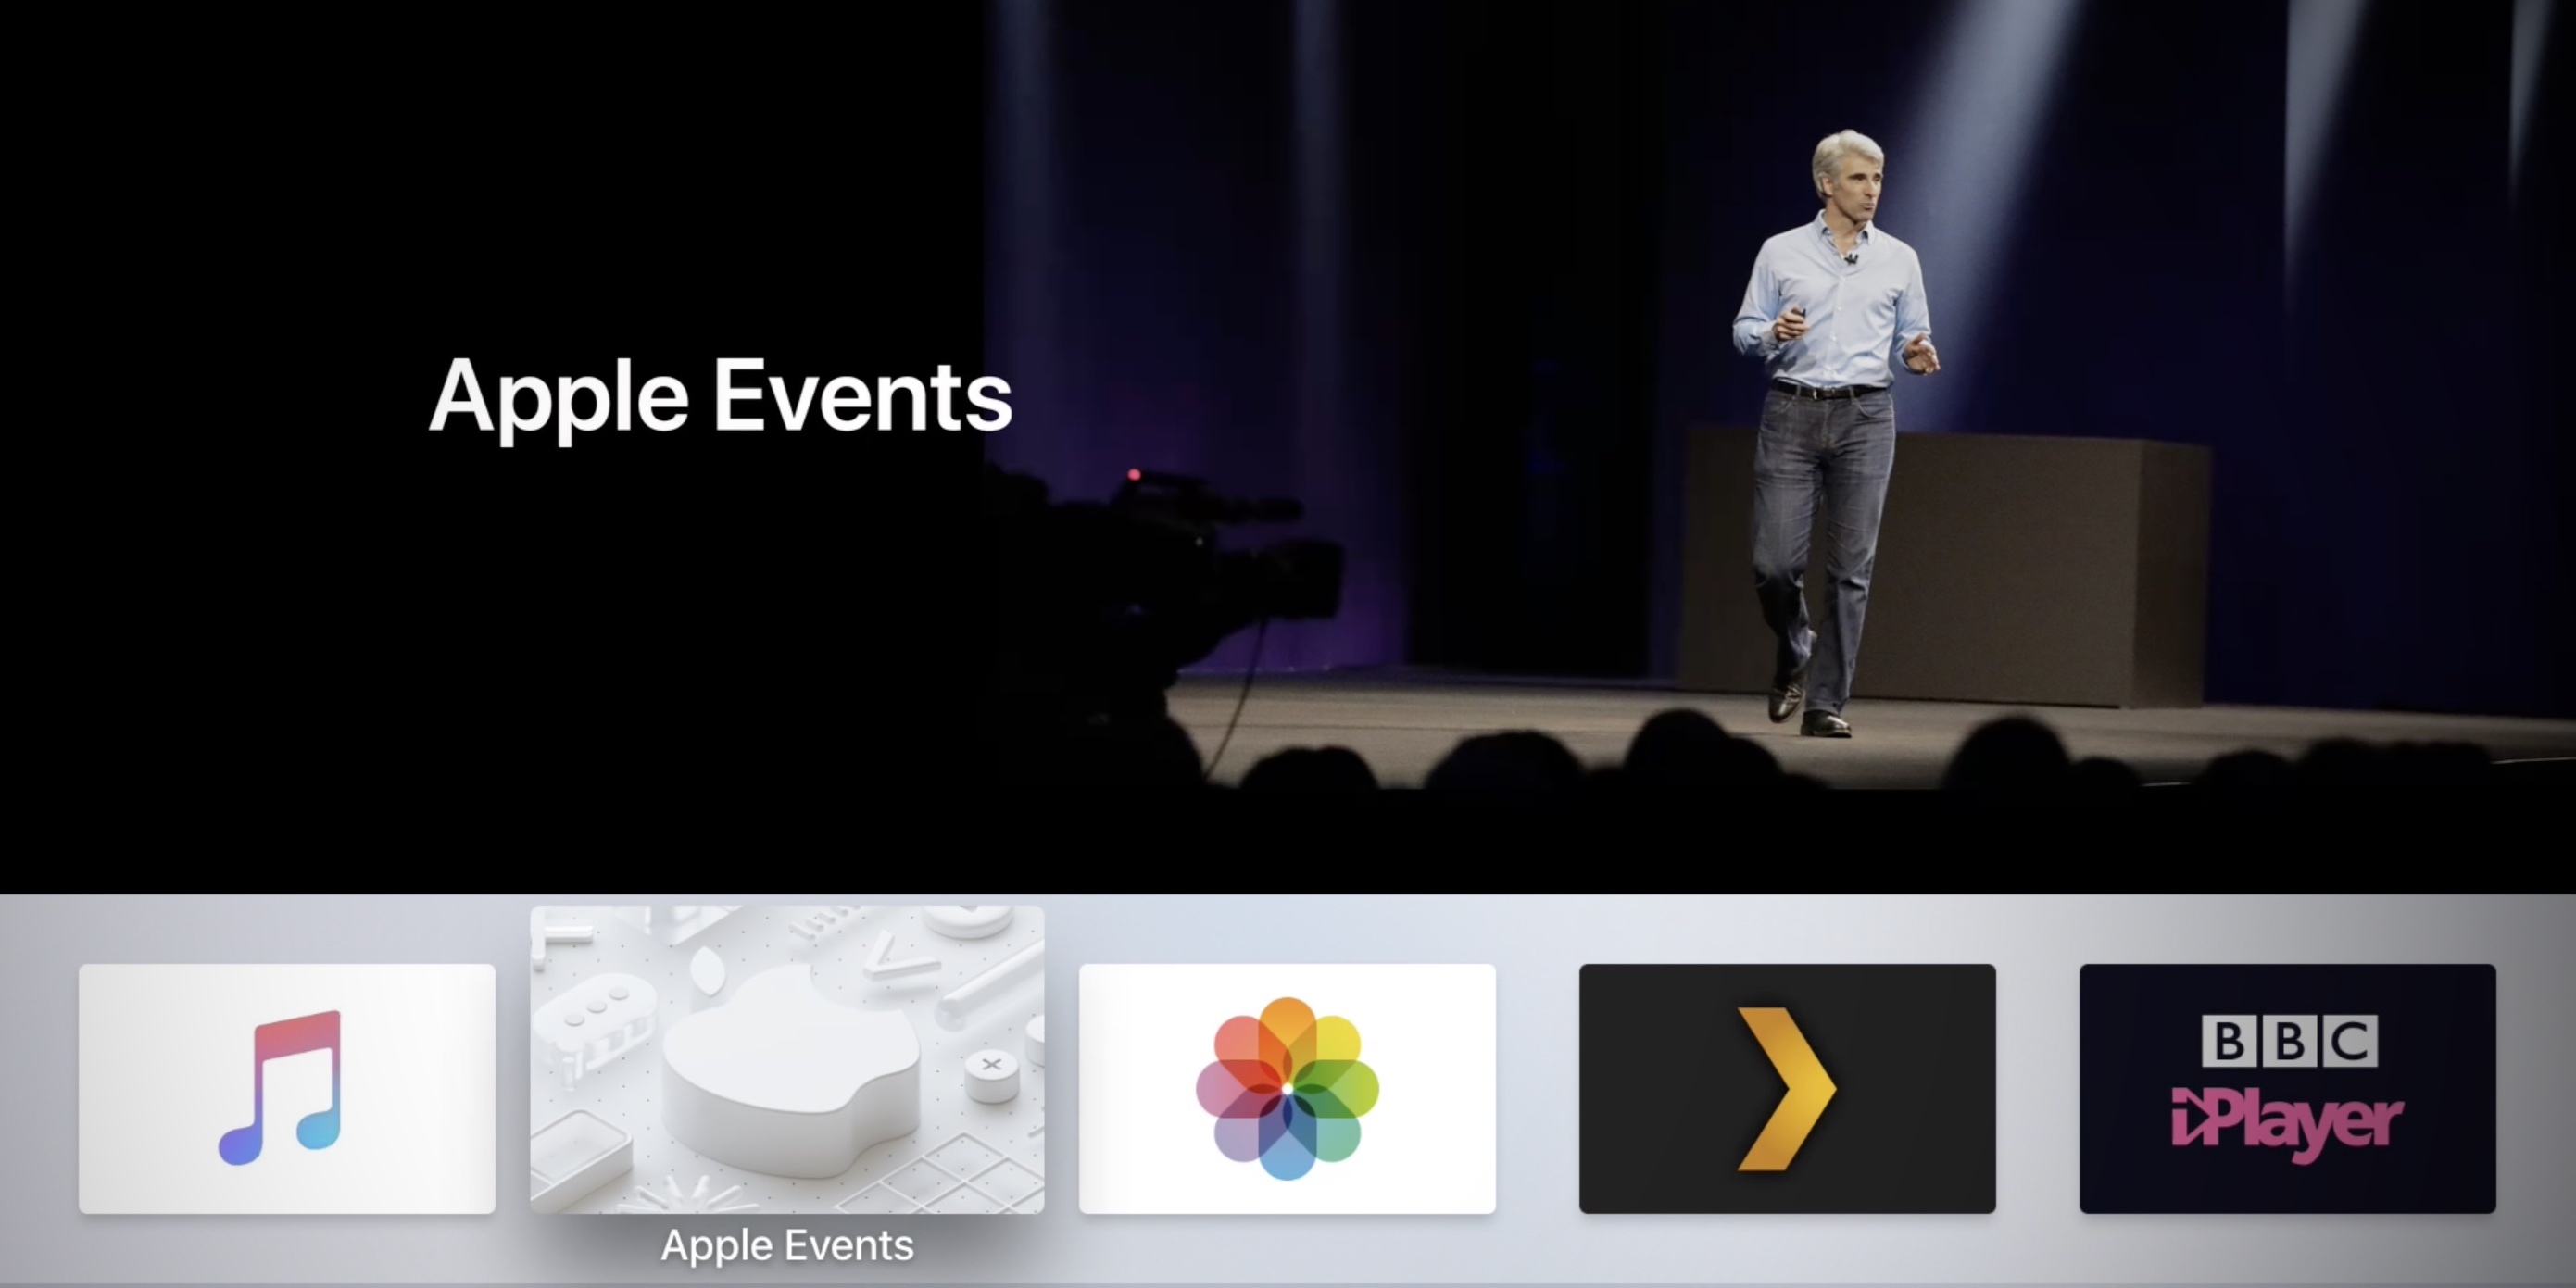 Apple Events App Updated On Apple Tv Ahead Of June 4 Wwdc Keynote Live Stream 9to5mac